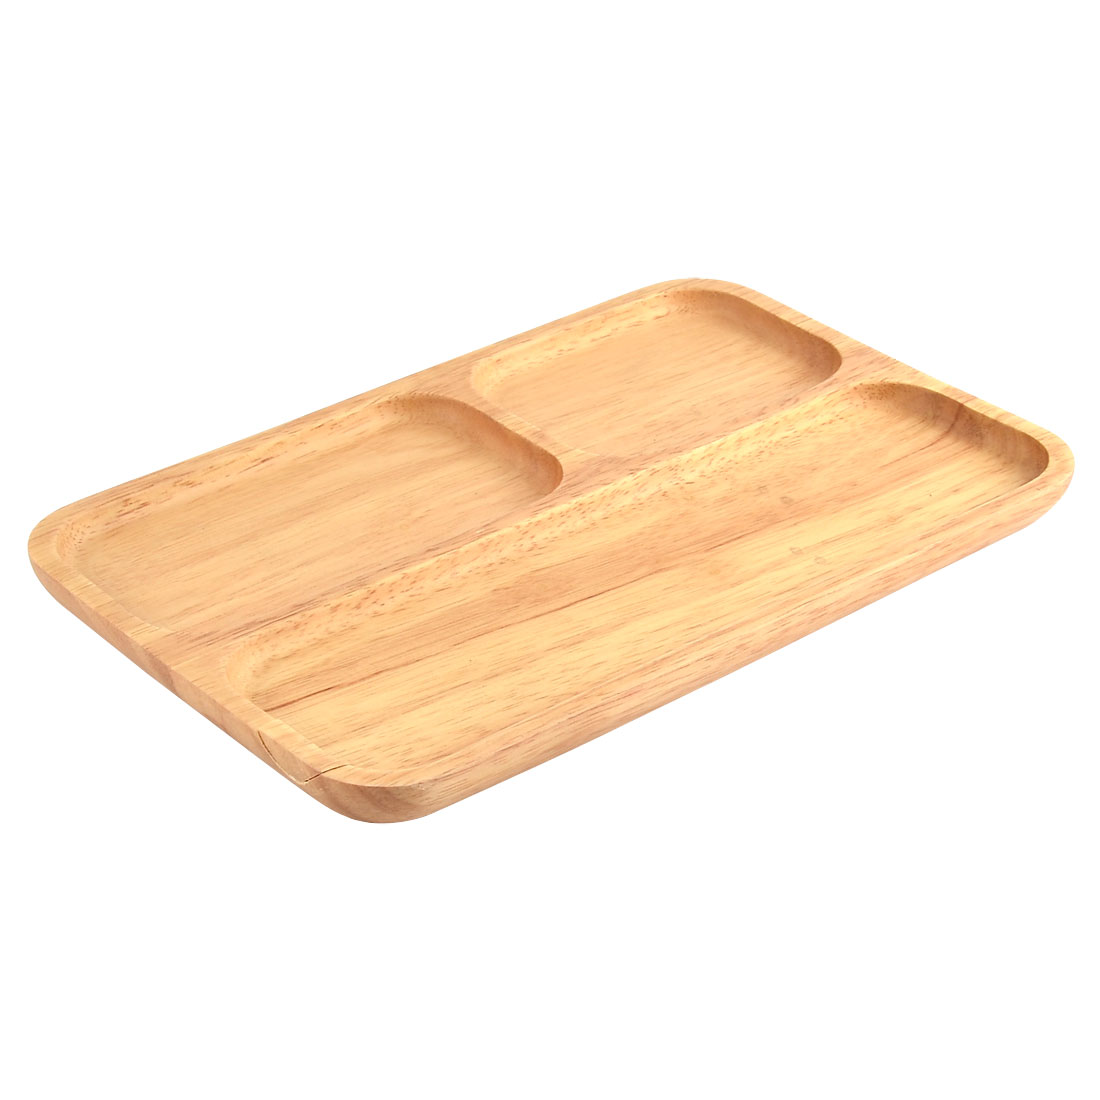 School Canteen Wood Grain Pattern Lunch Dinner 3 Sections Divided Platter Tray